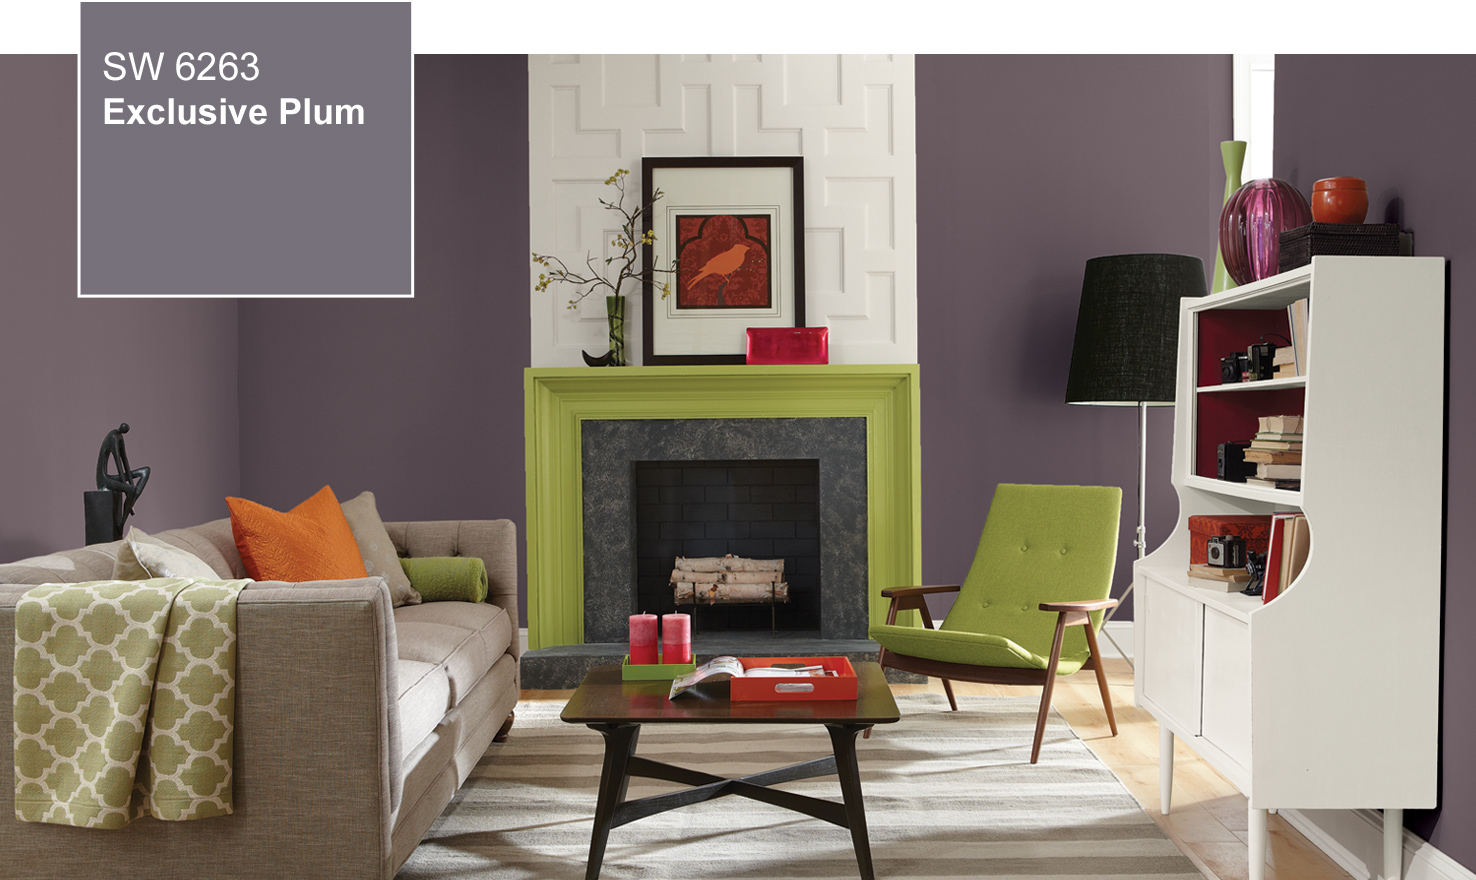 2014 color of the year exclusive plum sw 6263 by